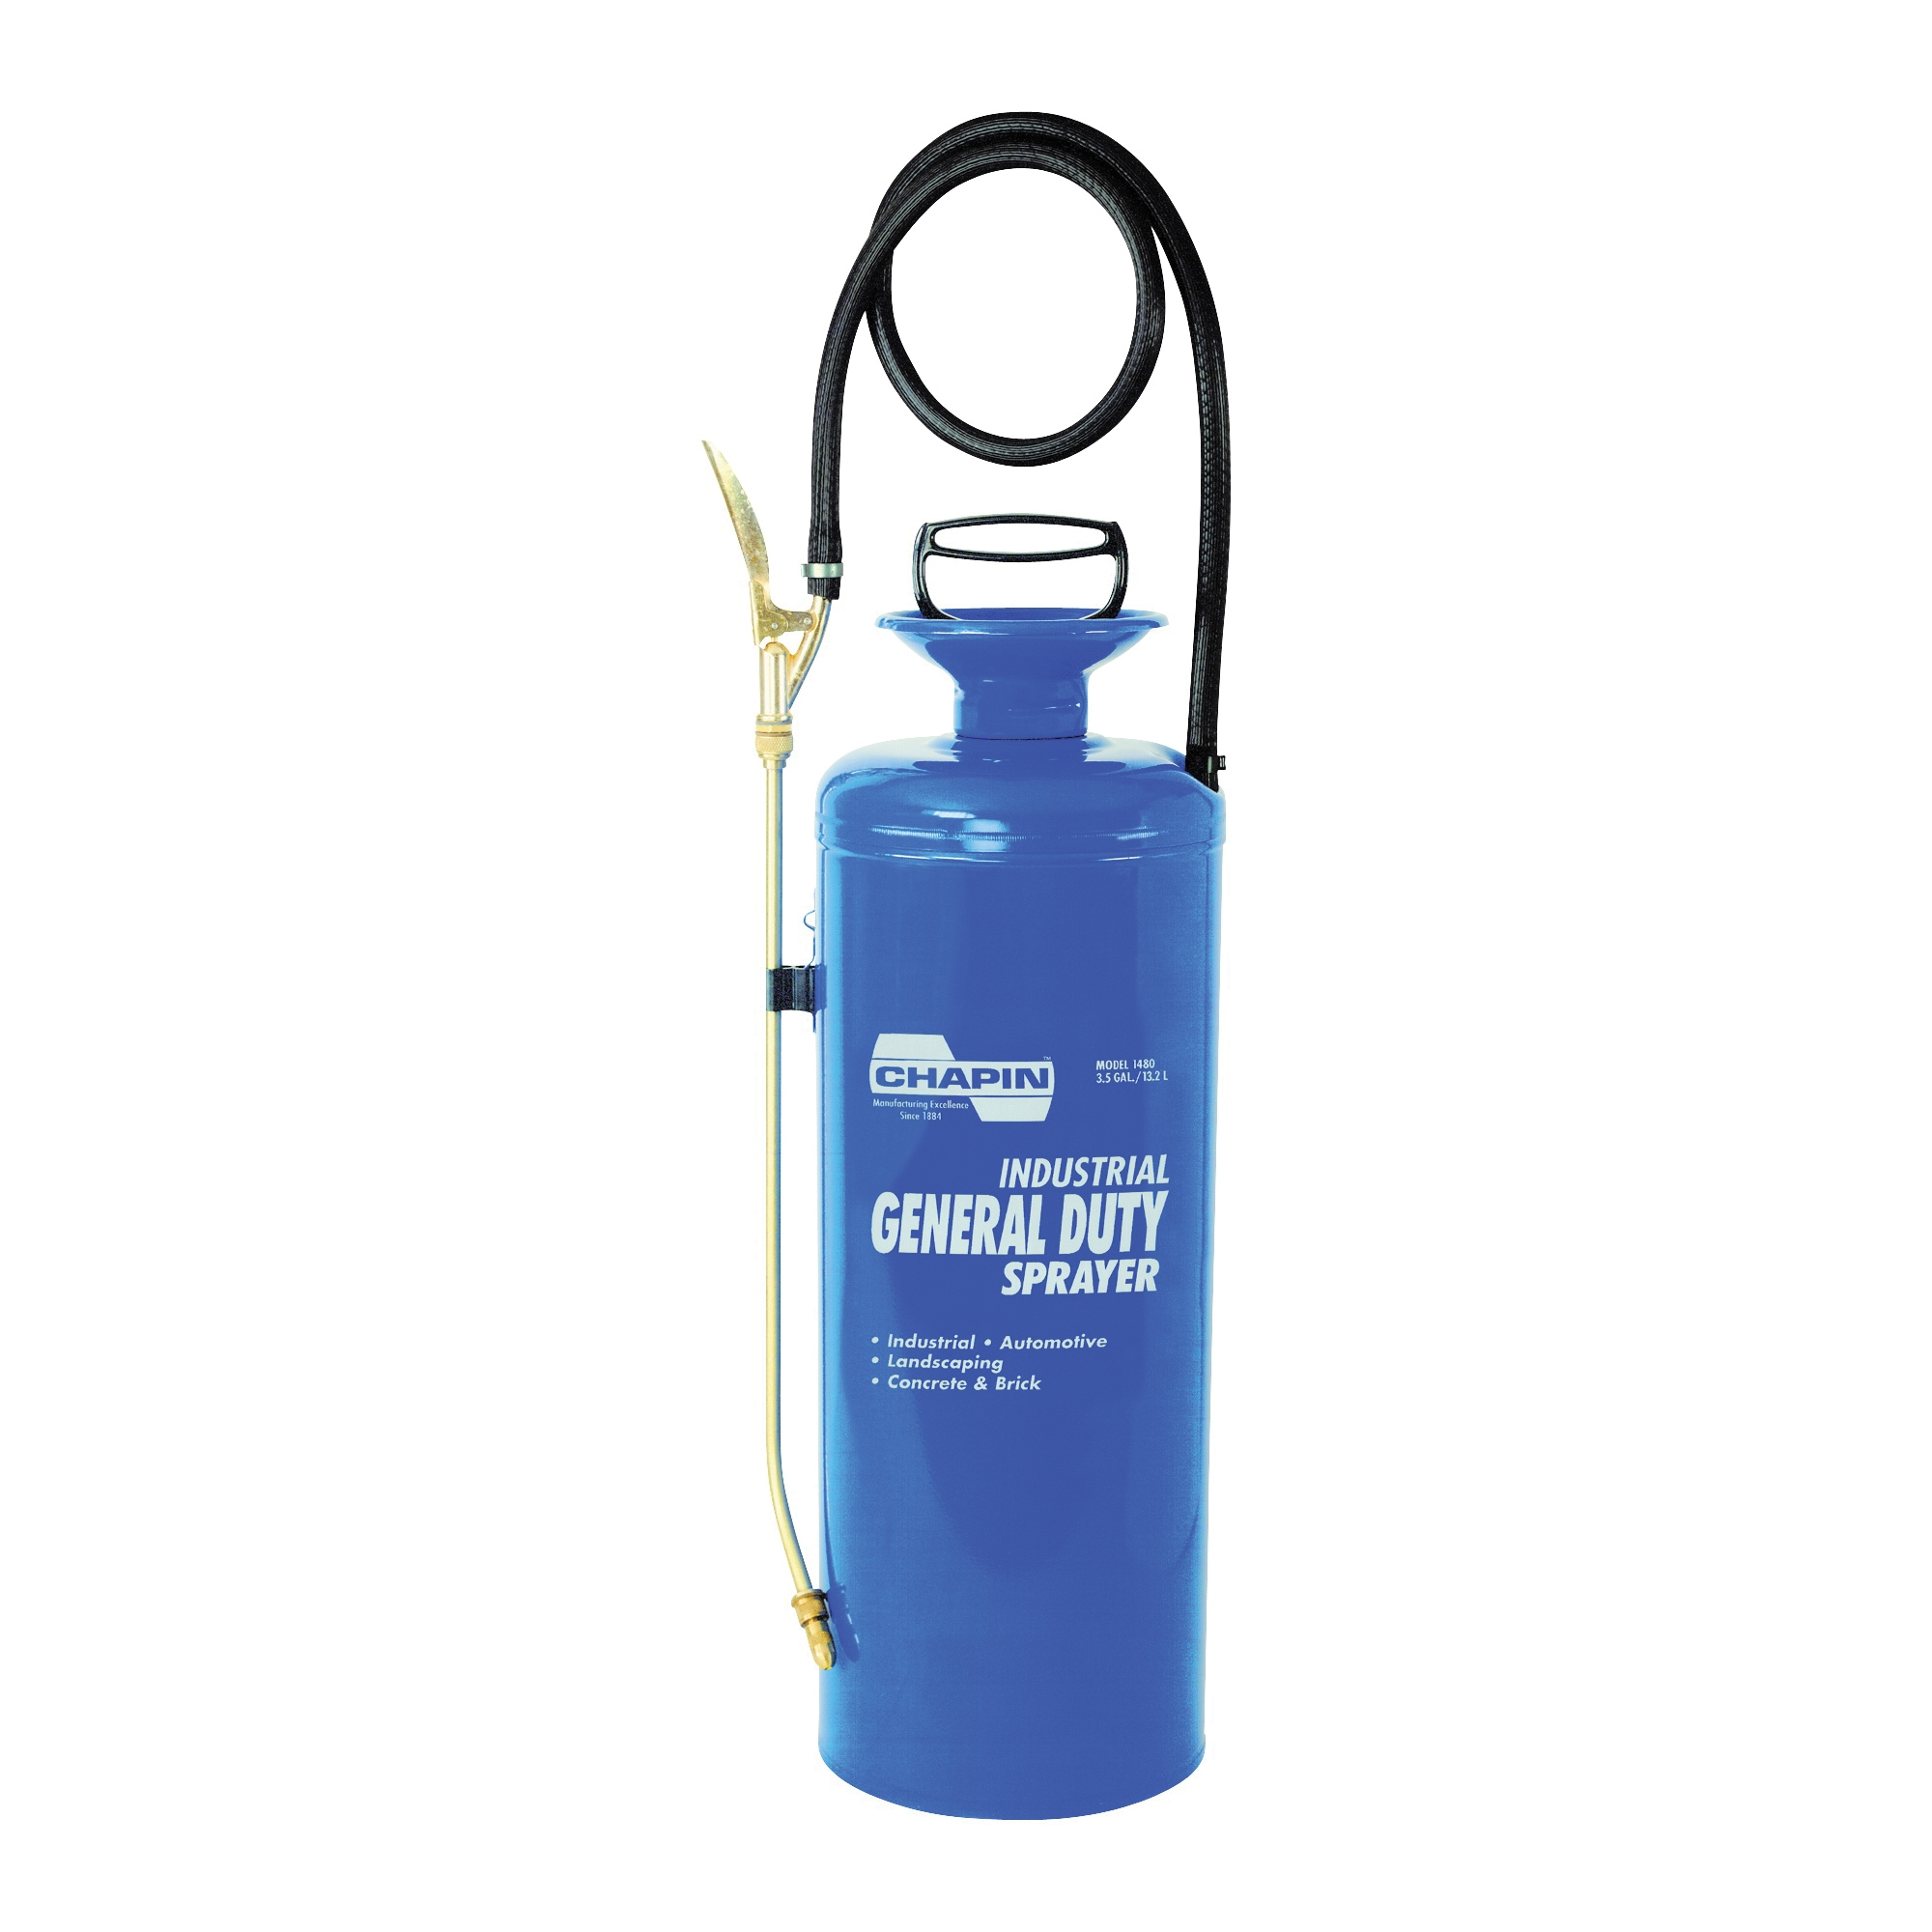 Picture of CHAPIN 1480 Handheld Sprayer, 3 gal Tank, Steel Tank, 42 in L Hose